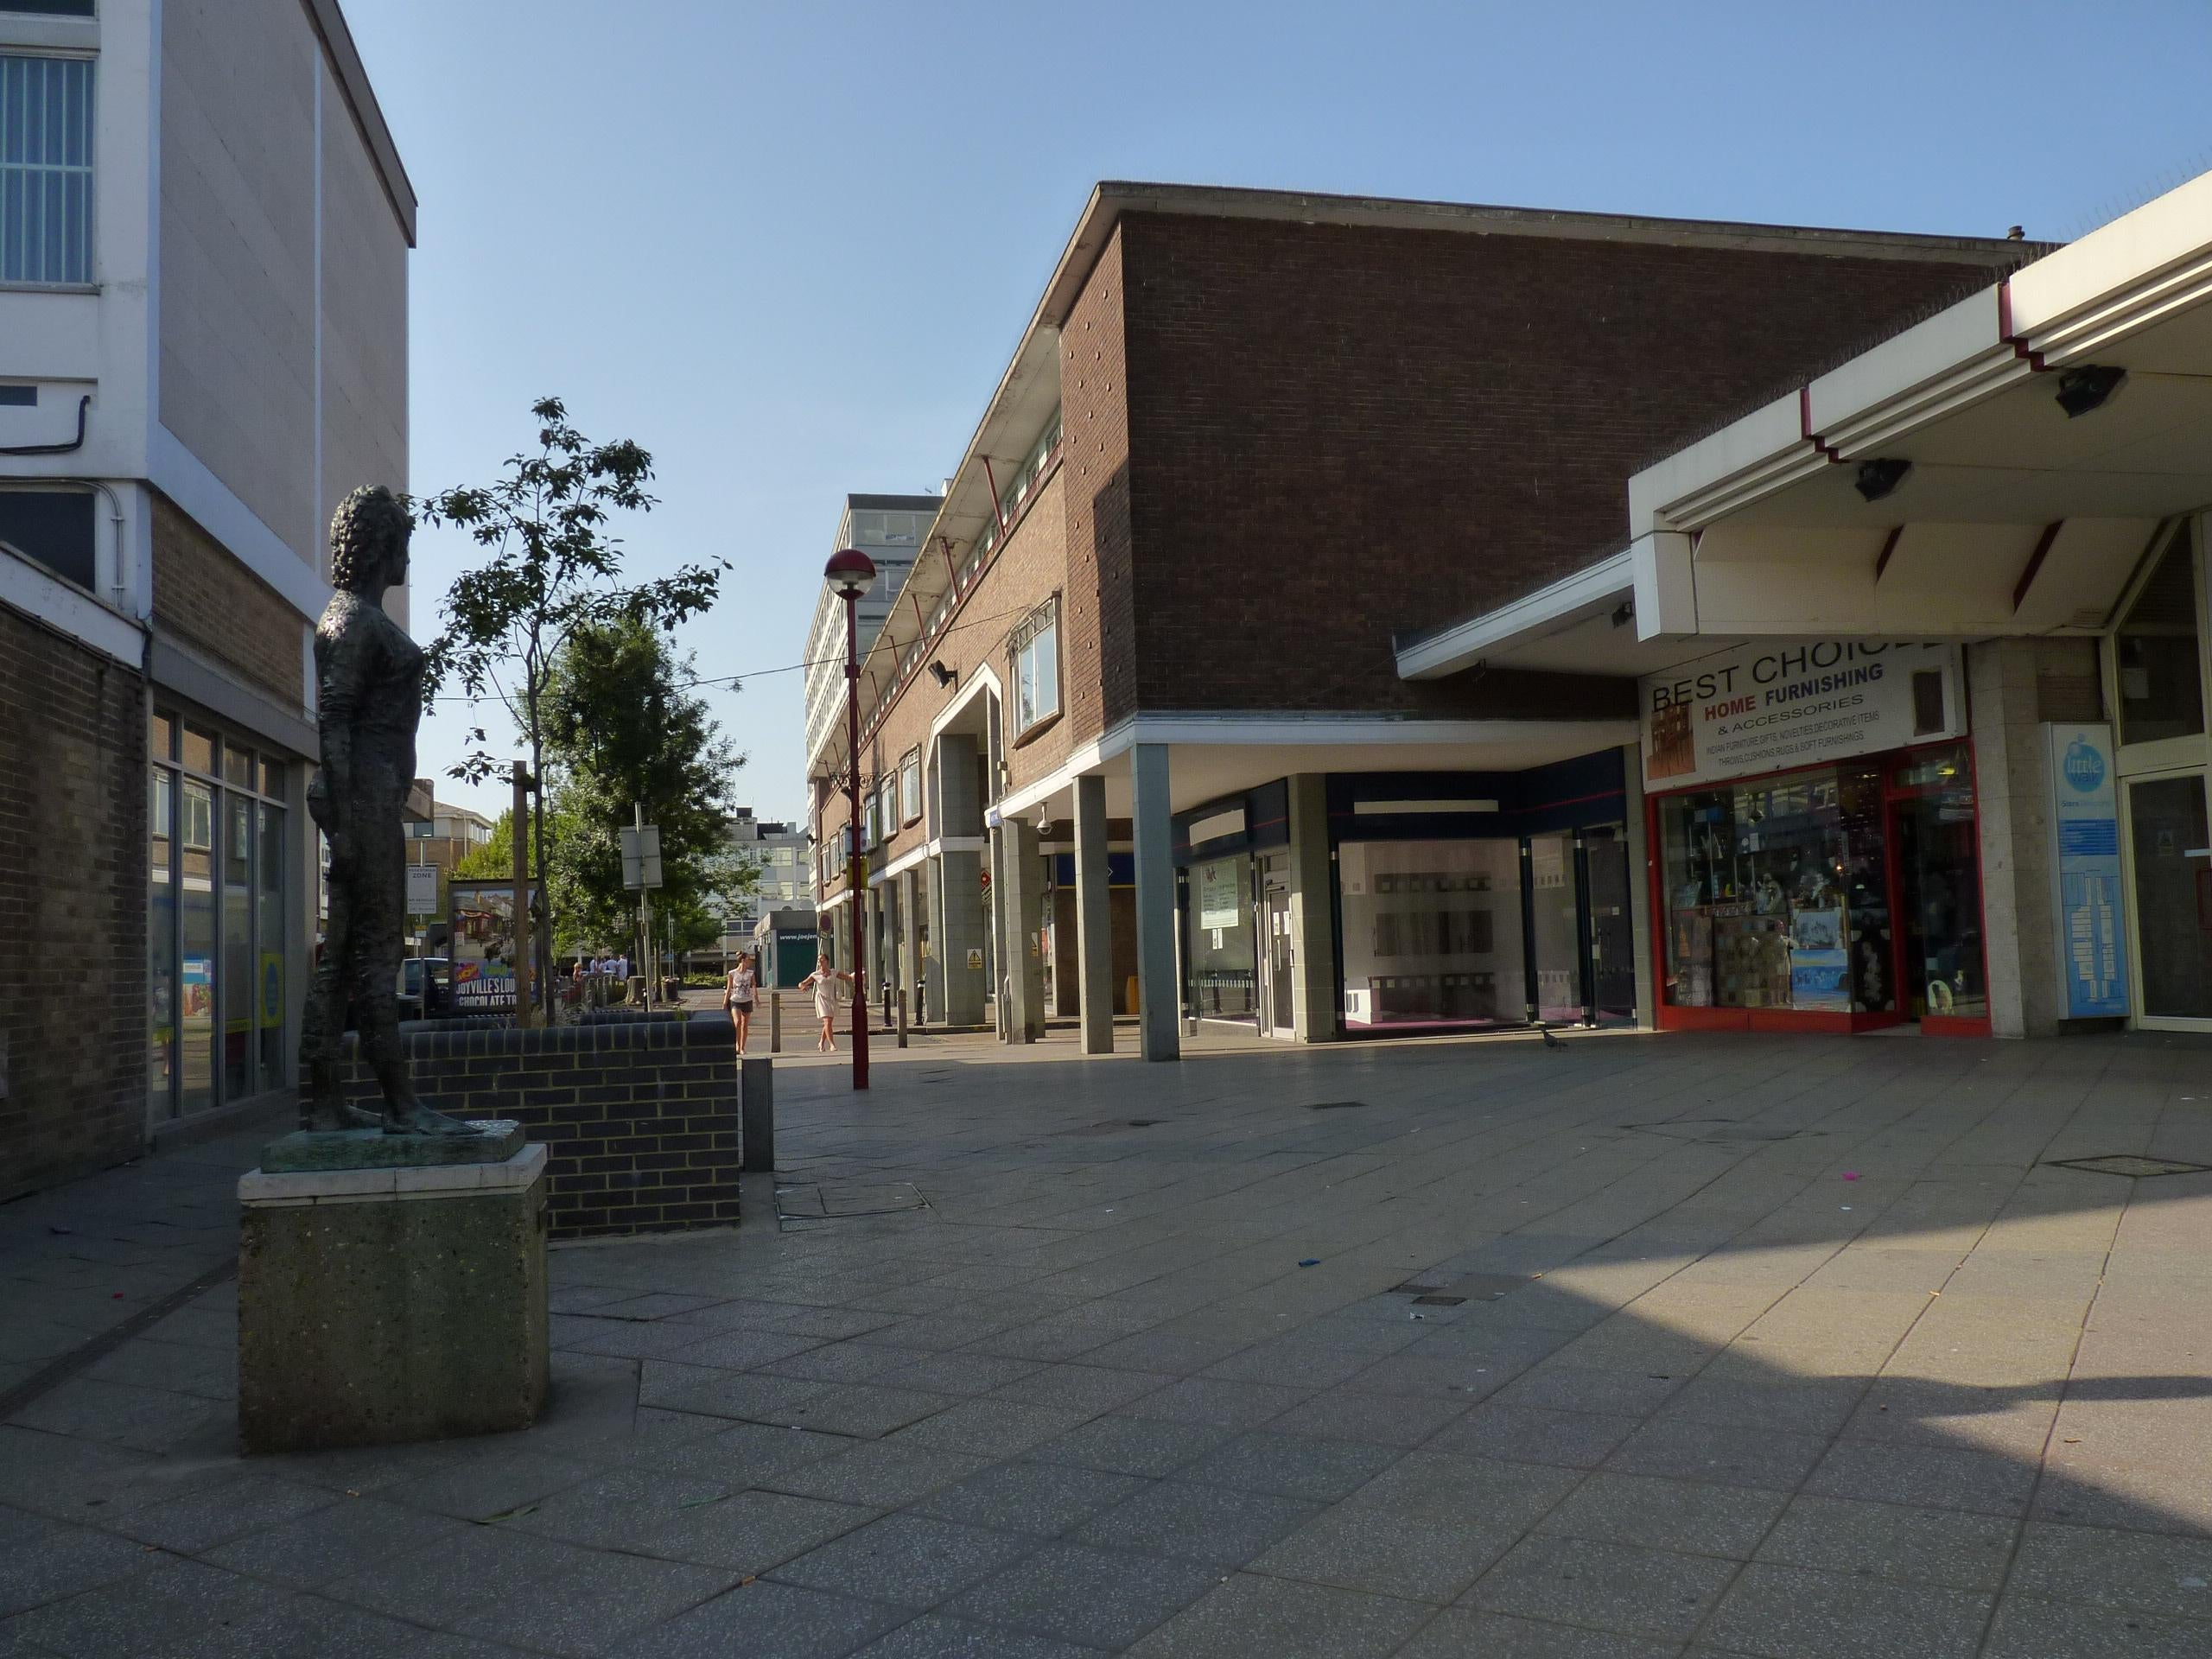 The Harvey Shopping Centre Harlow